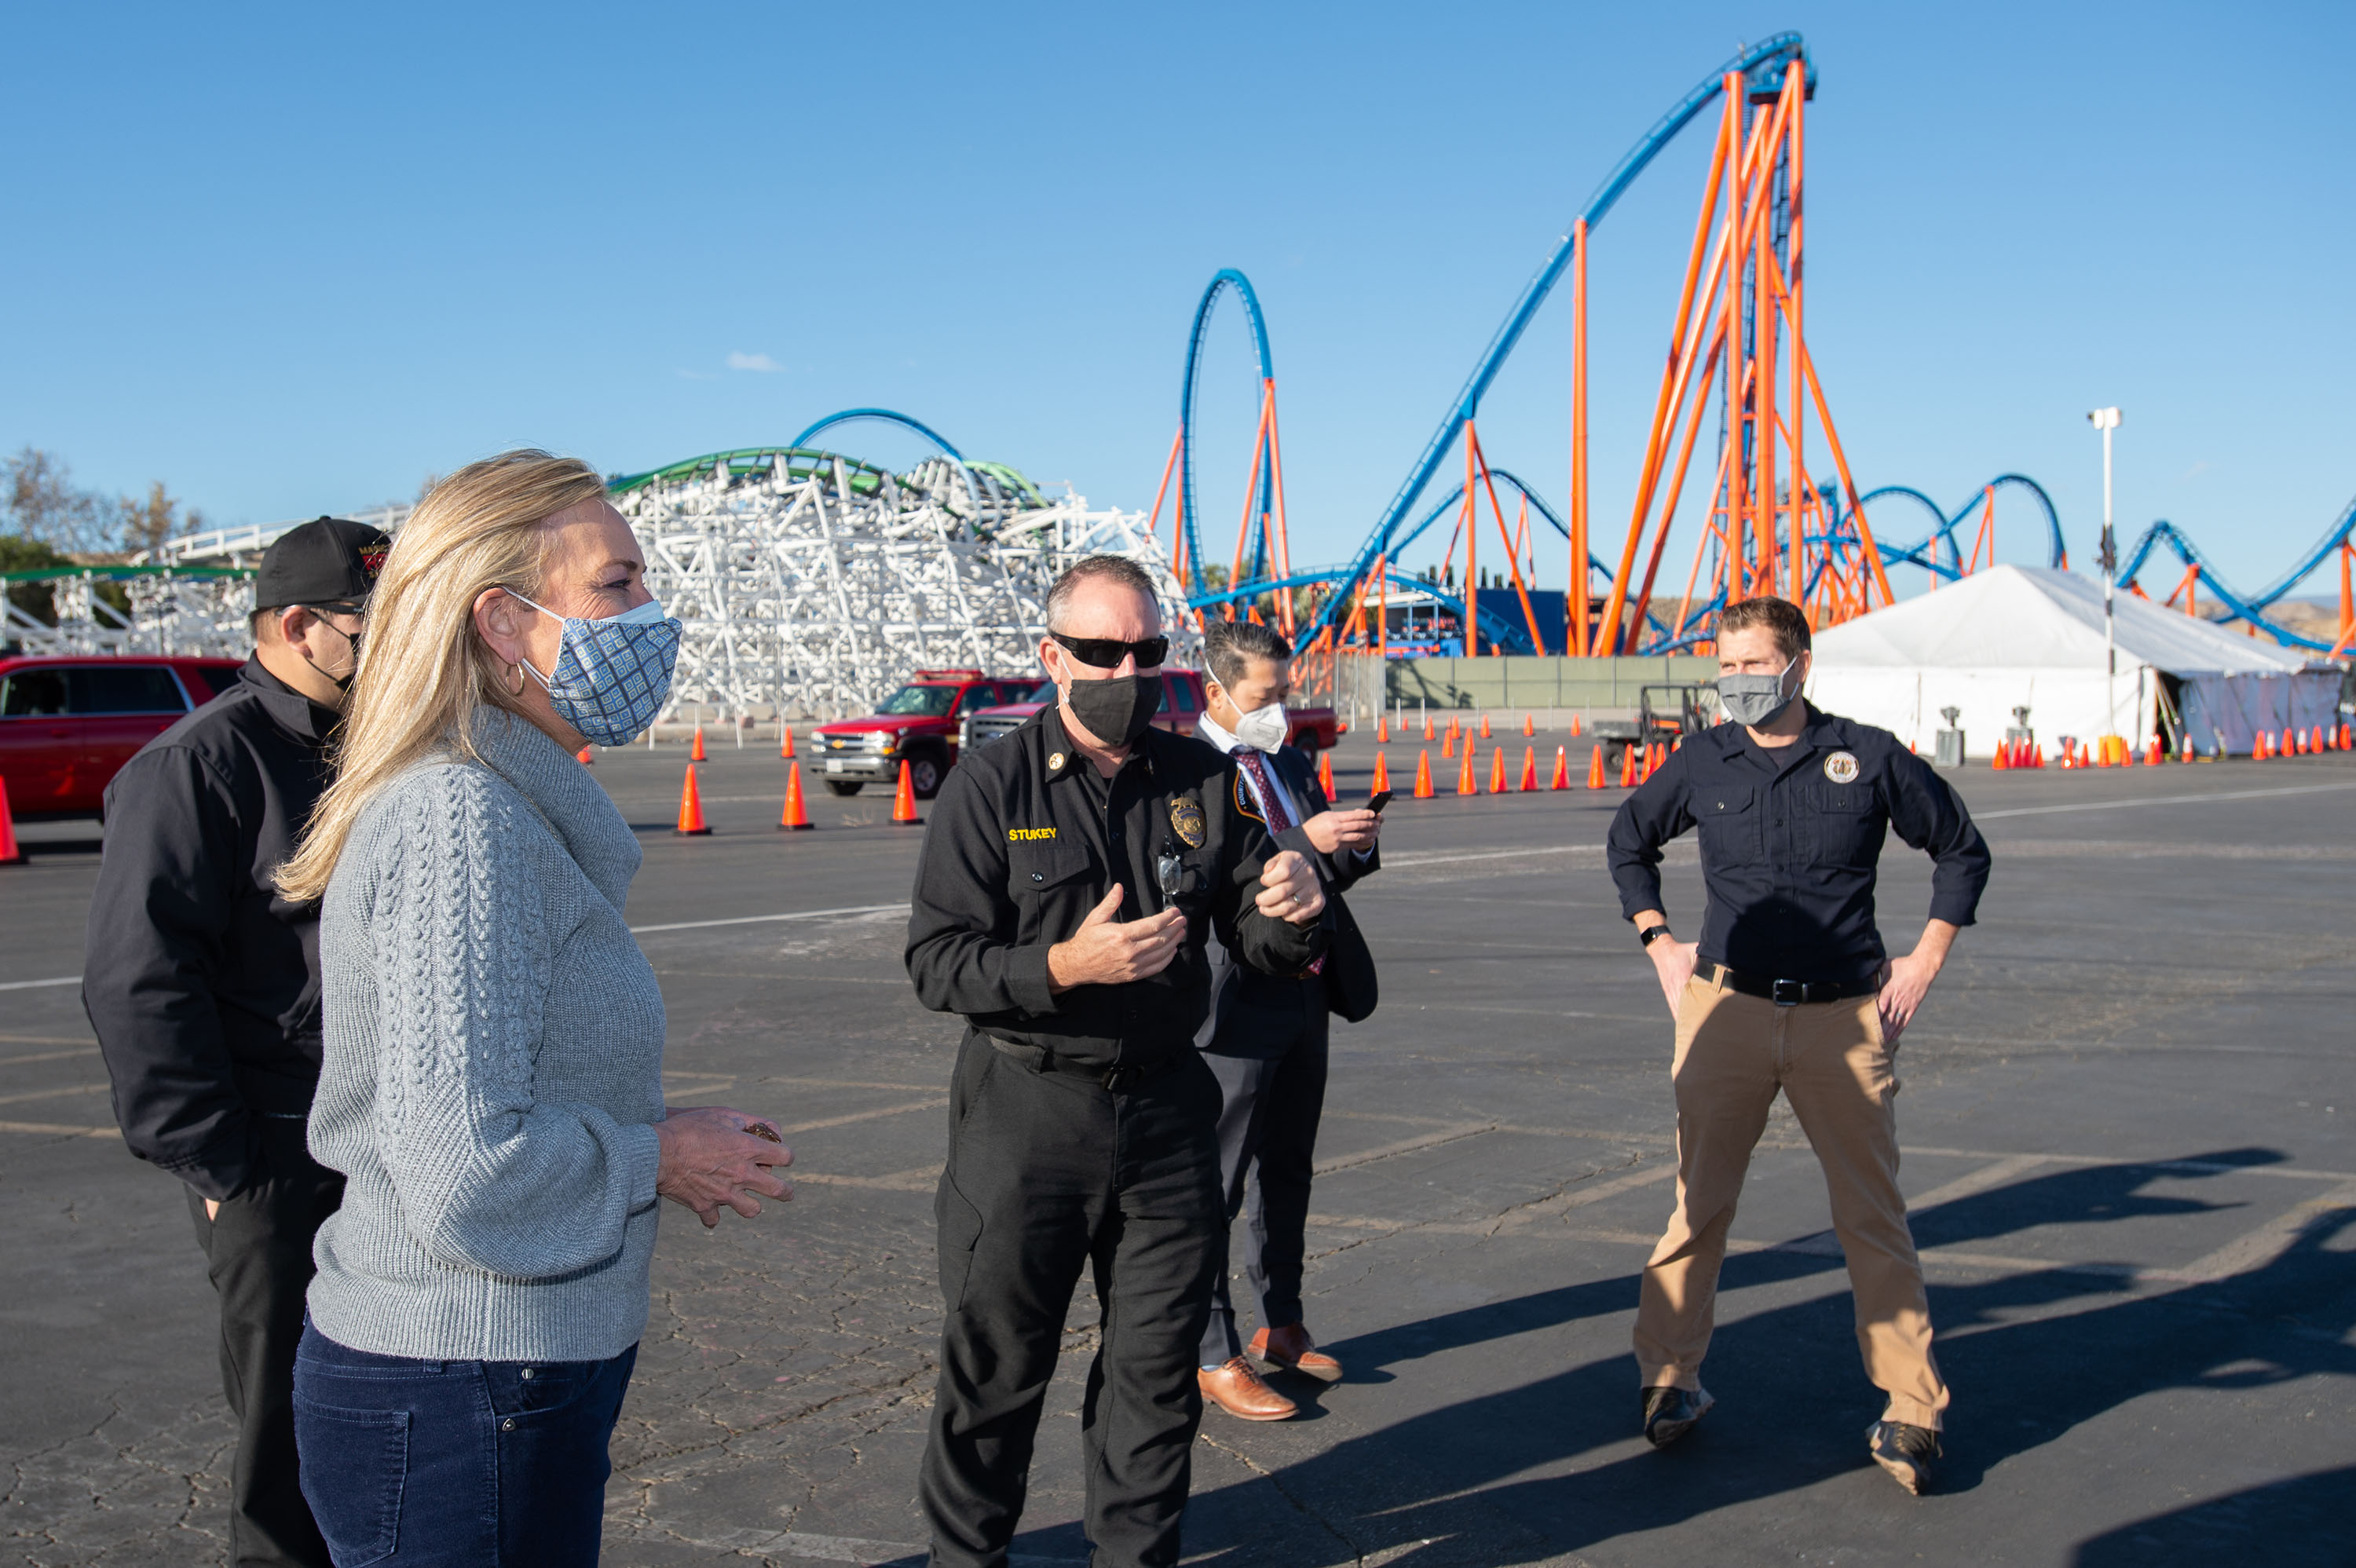 District 5 – Supervisor Kathryn Barger<br> <b>Jan. 20, 2021 - Vaccine Distribution at Magic Mountain </b><br> <i>Photo by David Franco / Board of Supervisors</i>